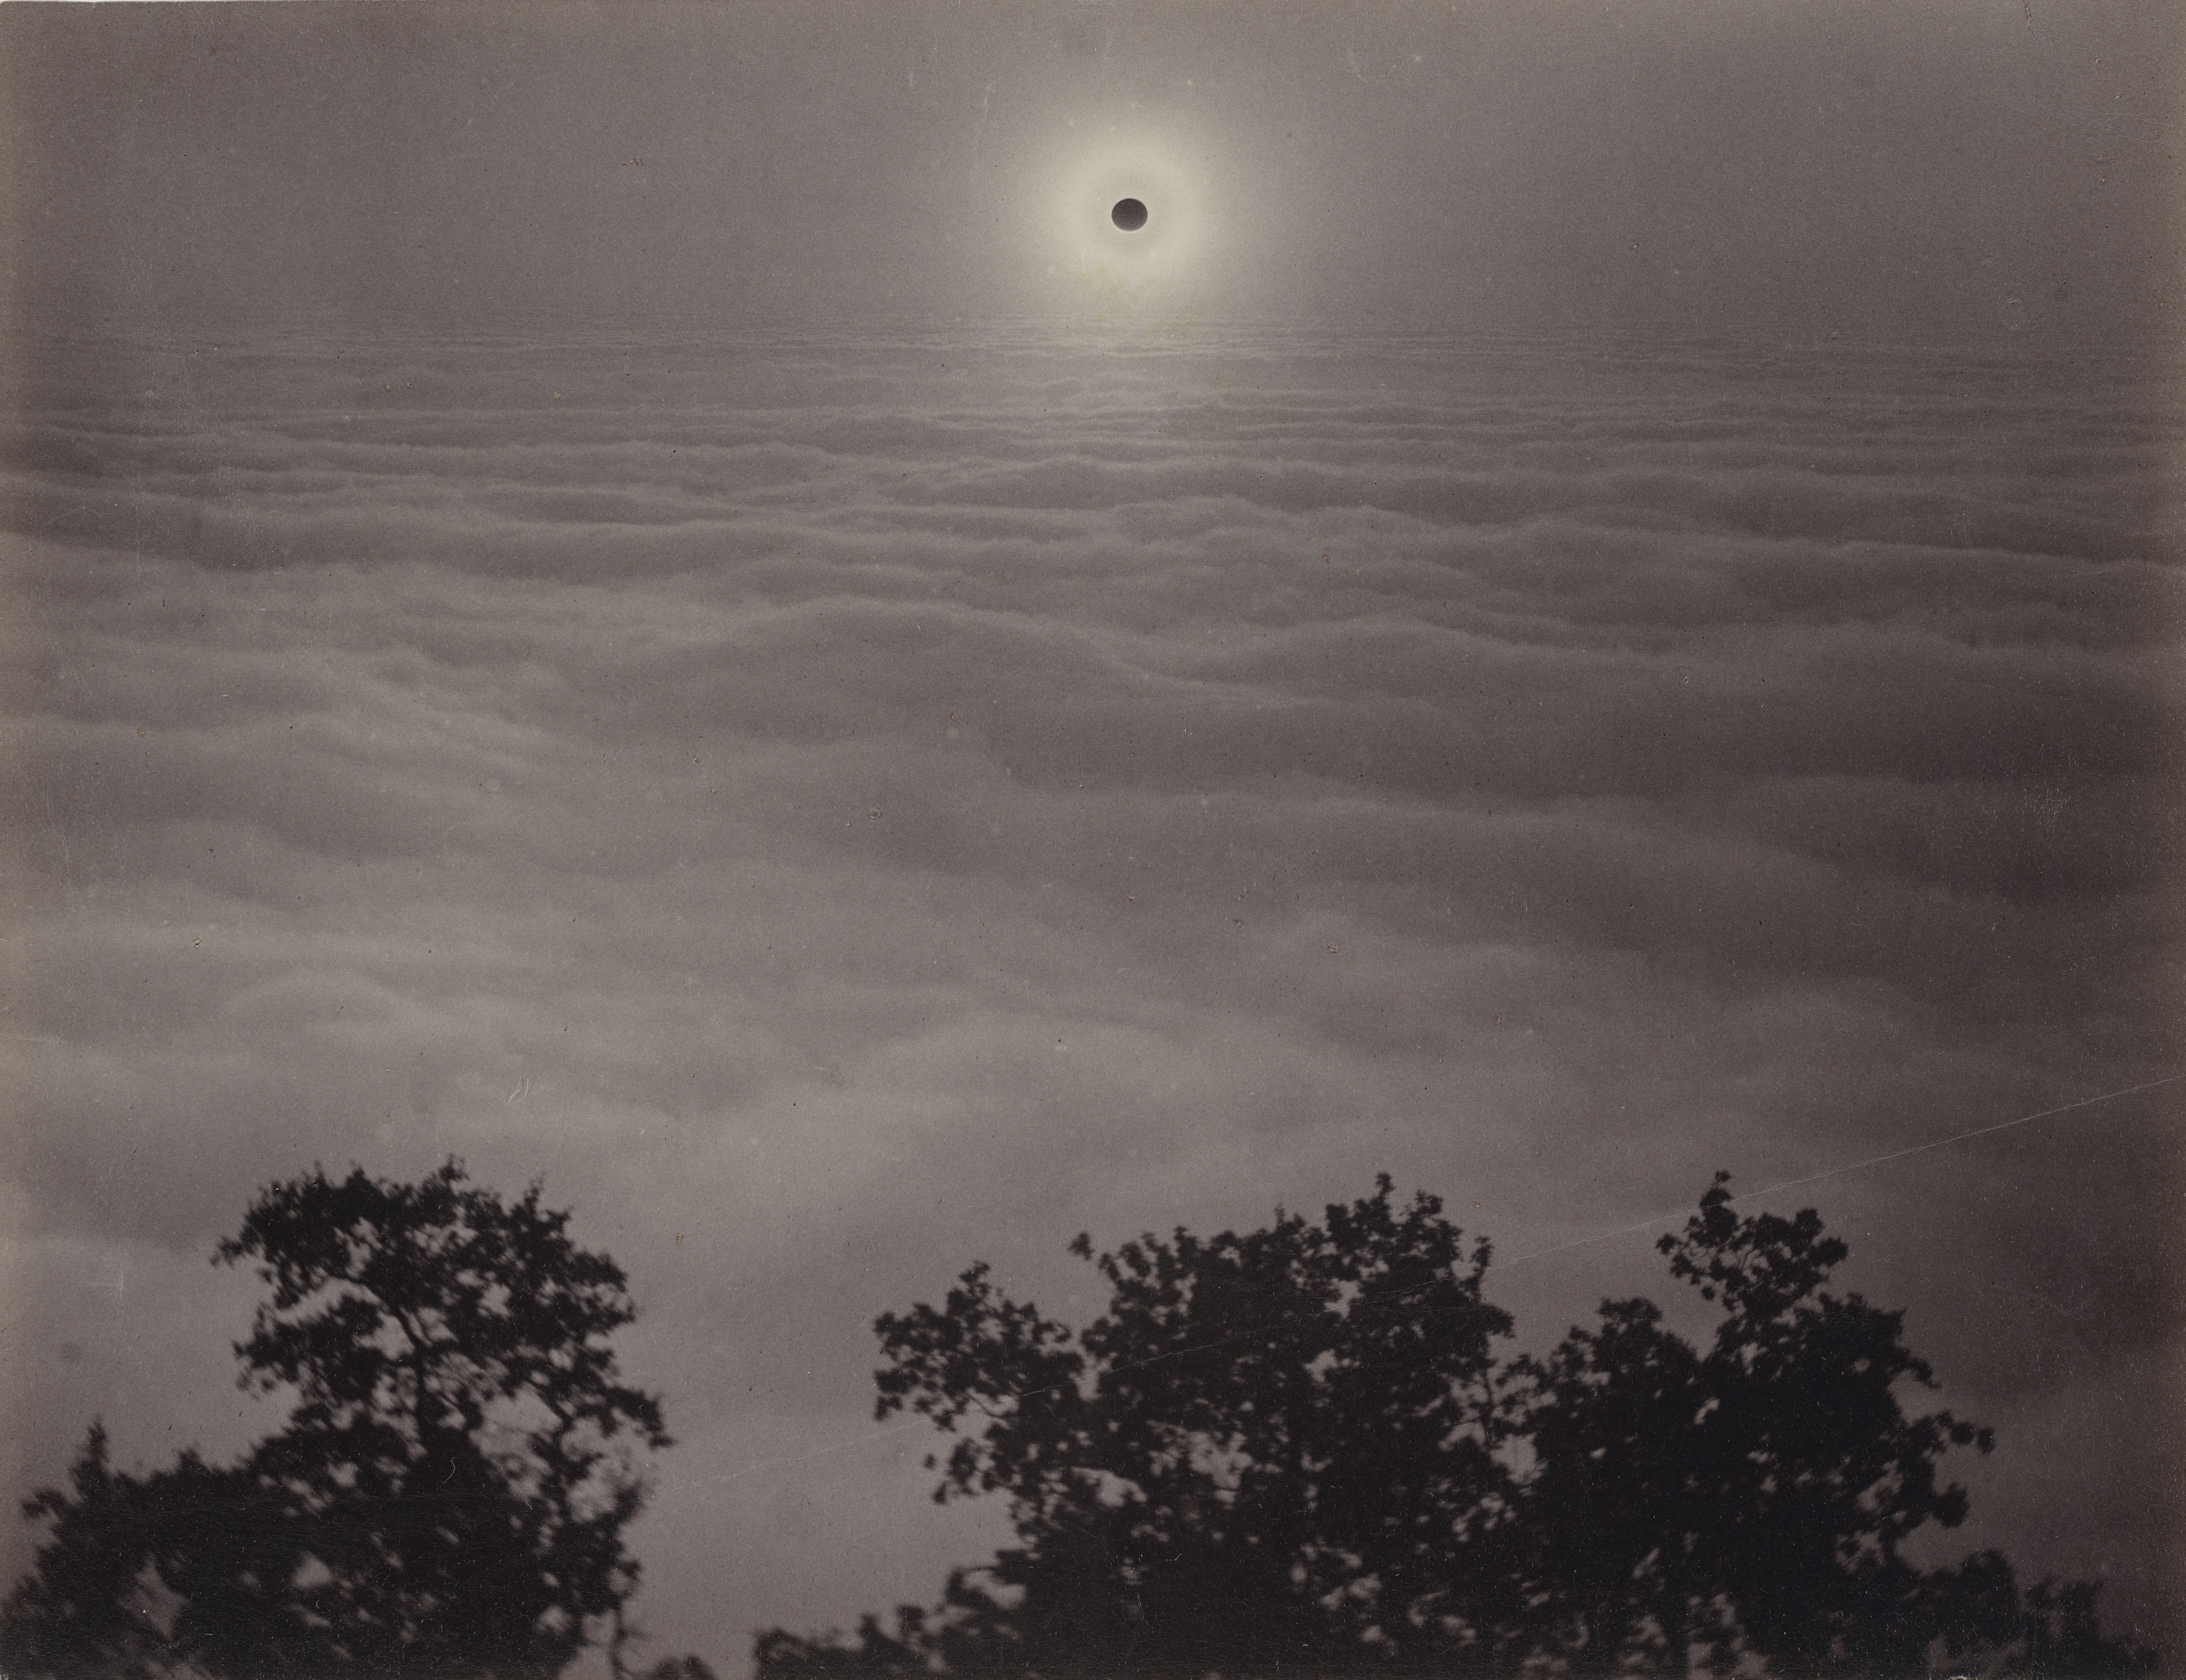 Solar Eclipse from Mount Santa Lucia, January 1, 1889